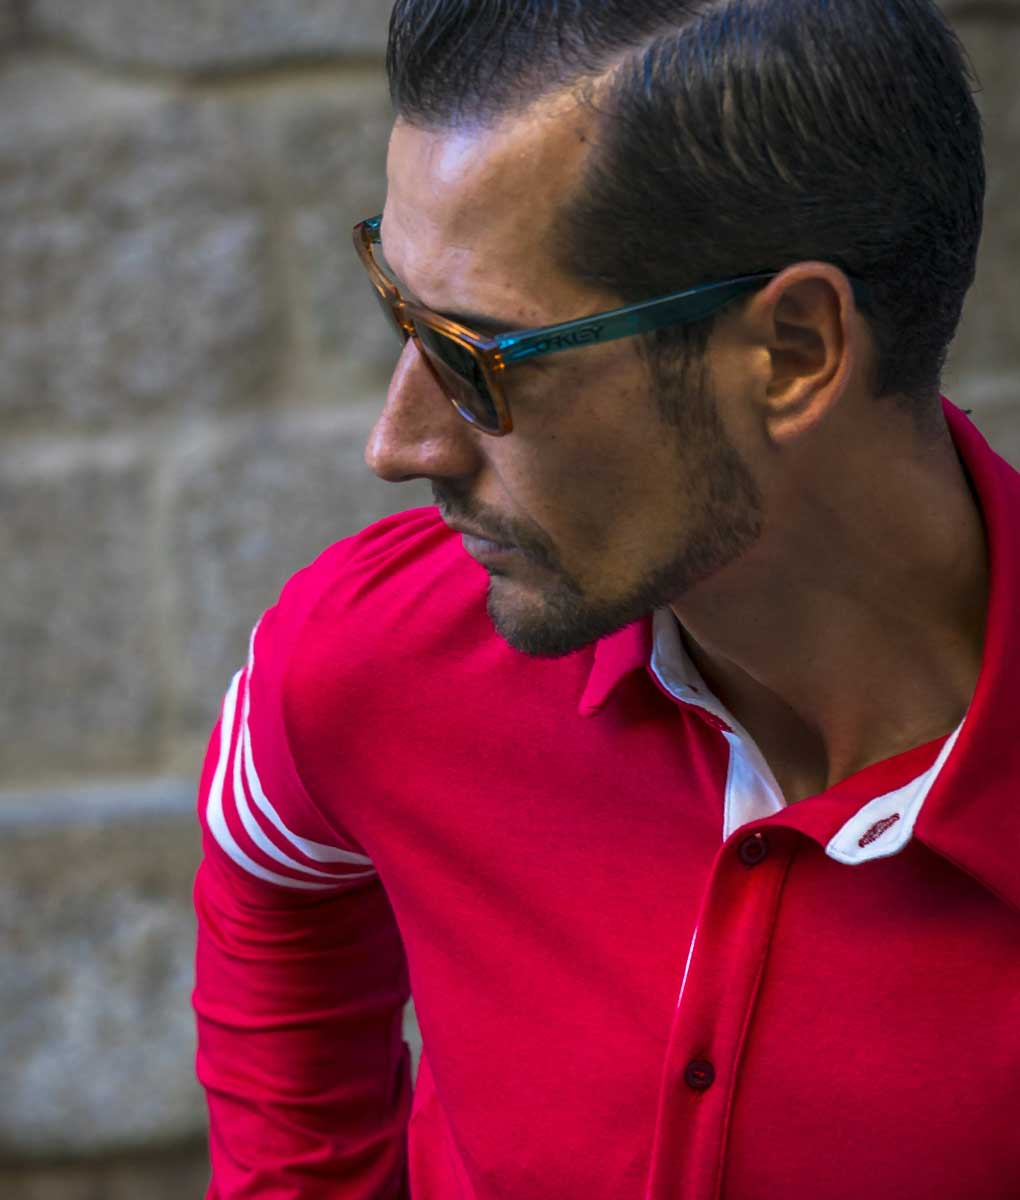 casual-cycling-transparent-casual-cycling-transparent-red-merino-shirt-detail-neck